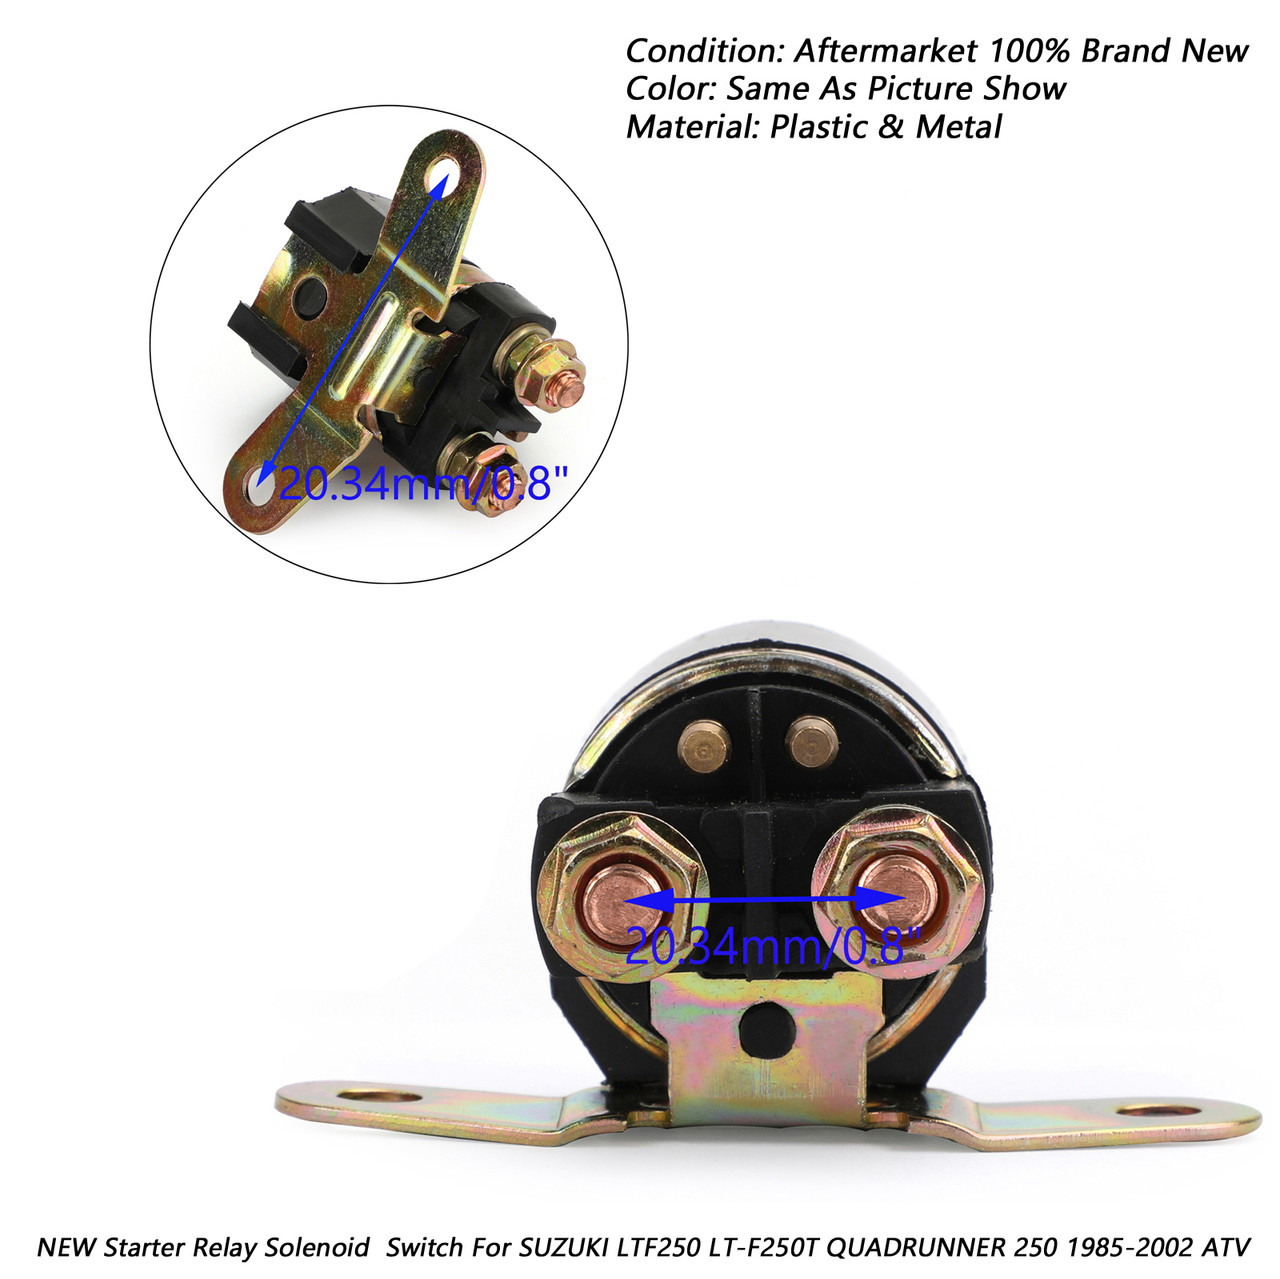 Starter Relay Solenoid Ignition Switch Key For SUZUKI LT-F4WDX KING QUAD  ATV 91-98 LTF230 LT-F230 QUADRUNNER ATV NEW 86-87